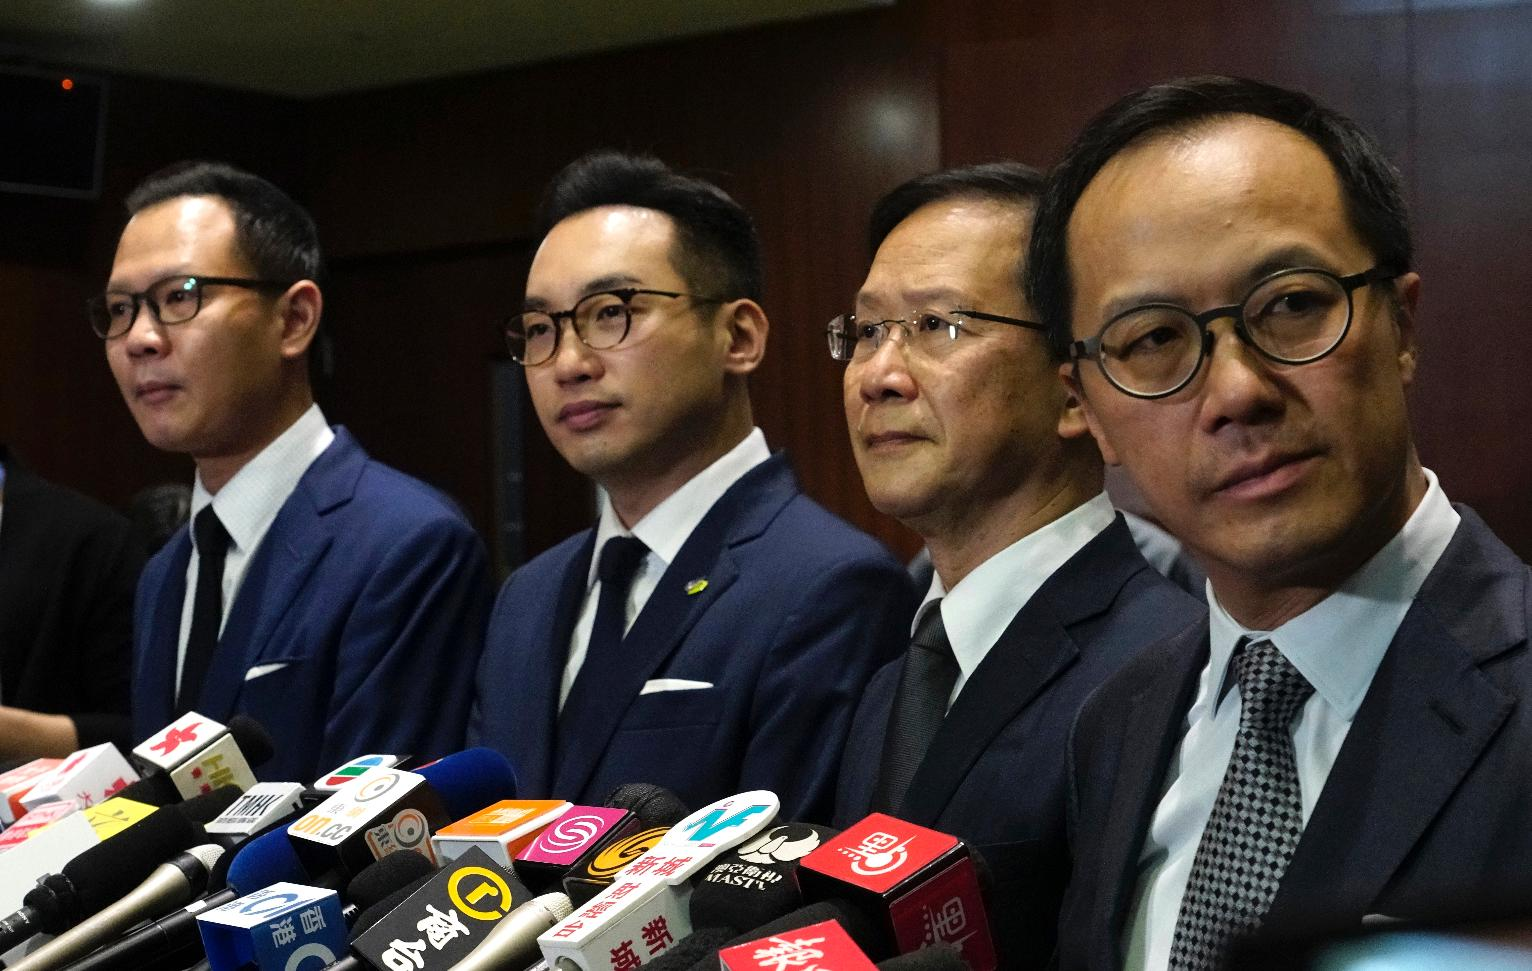 Hong Kong lawmakers' disqualification prompts mass resignation